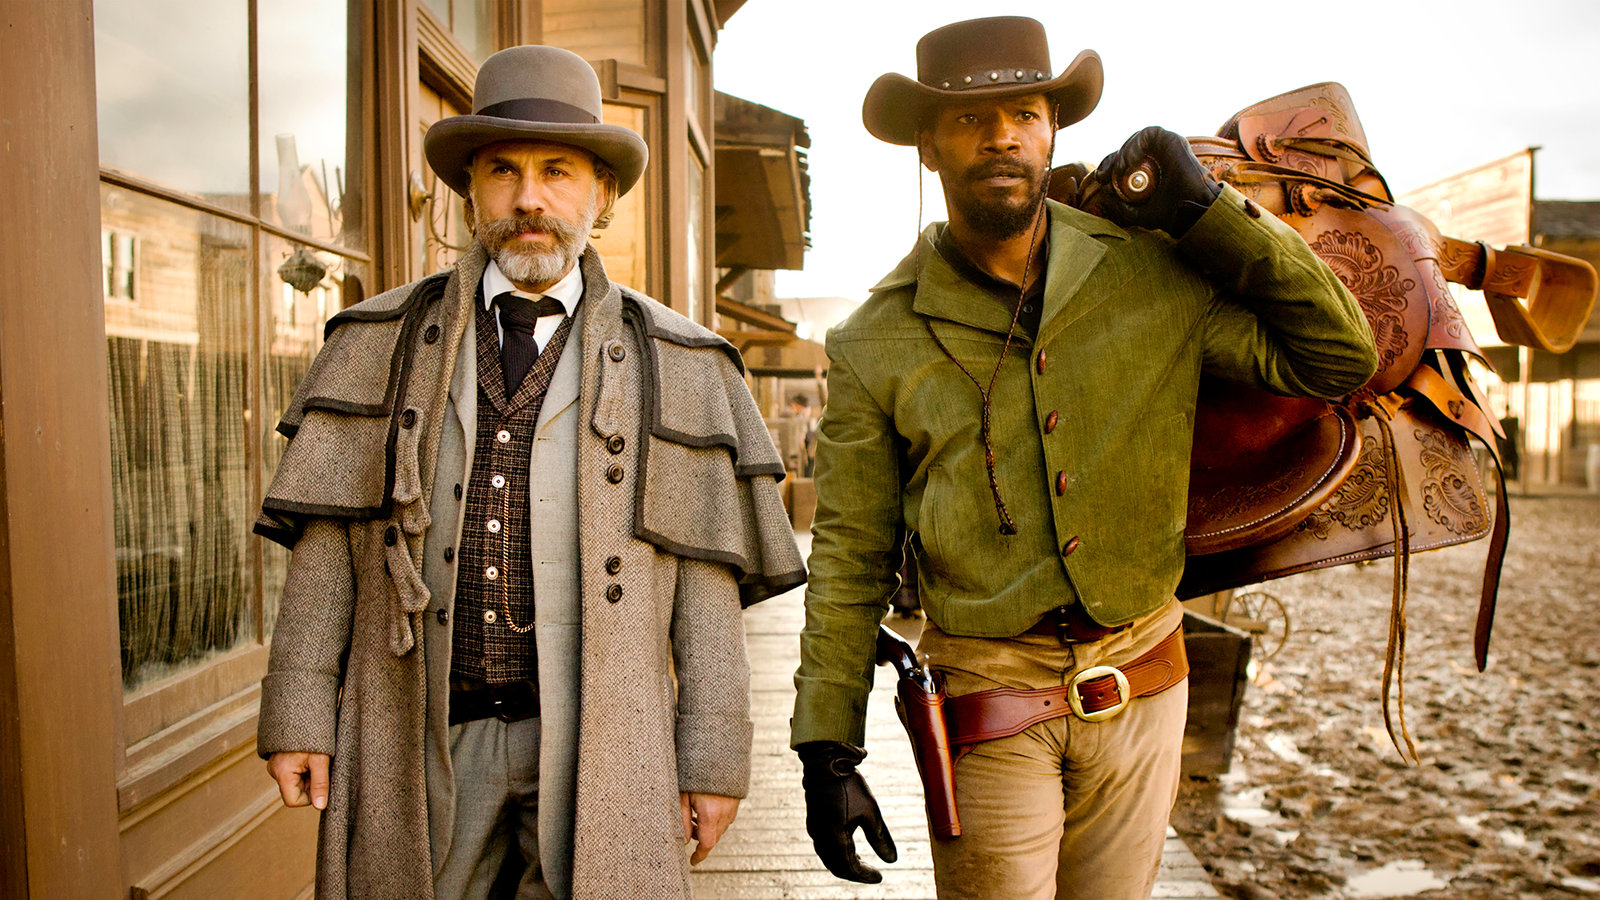 best-quentin-tarantino-movies-netflix-india-django-unchained_iamge